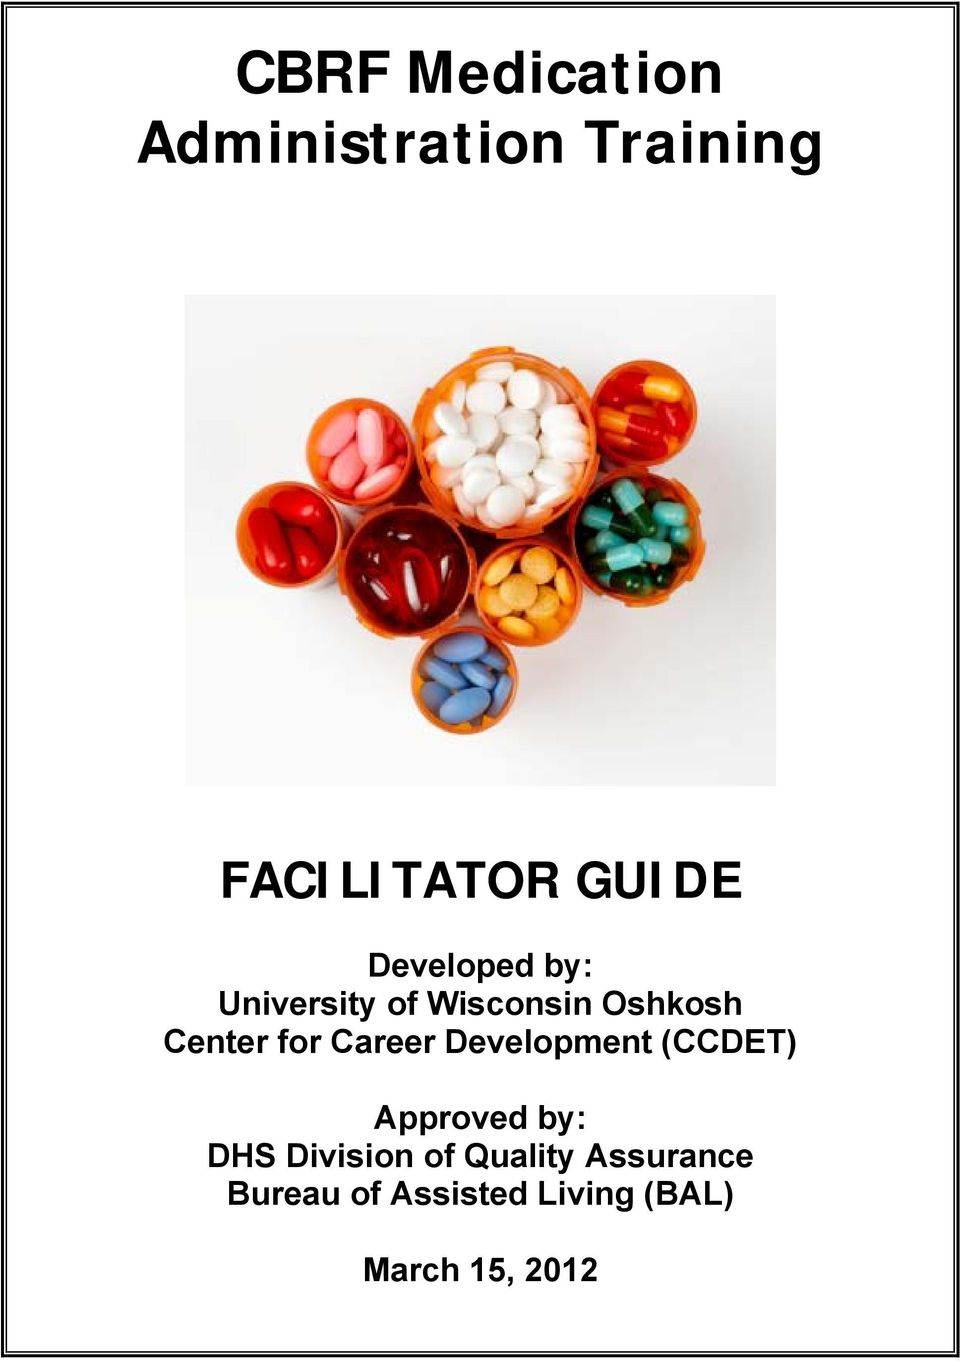 Career Development (CCDET) Approved by: DHS Division of